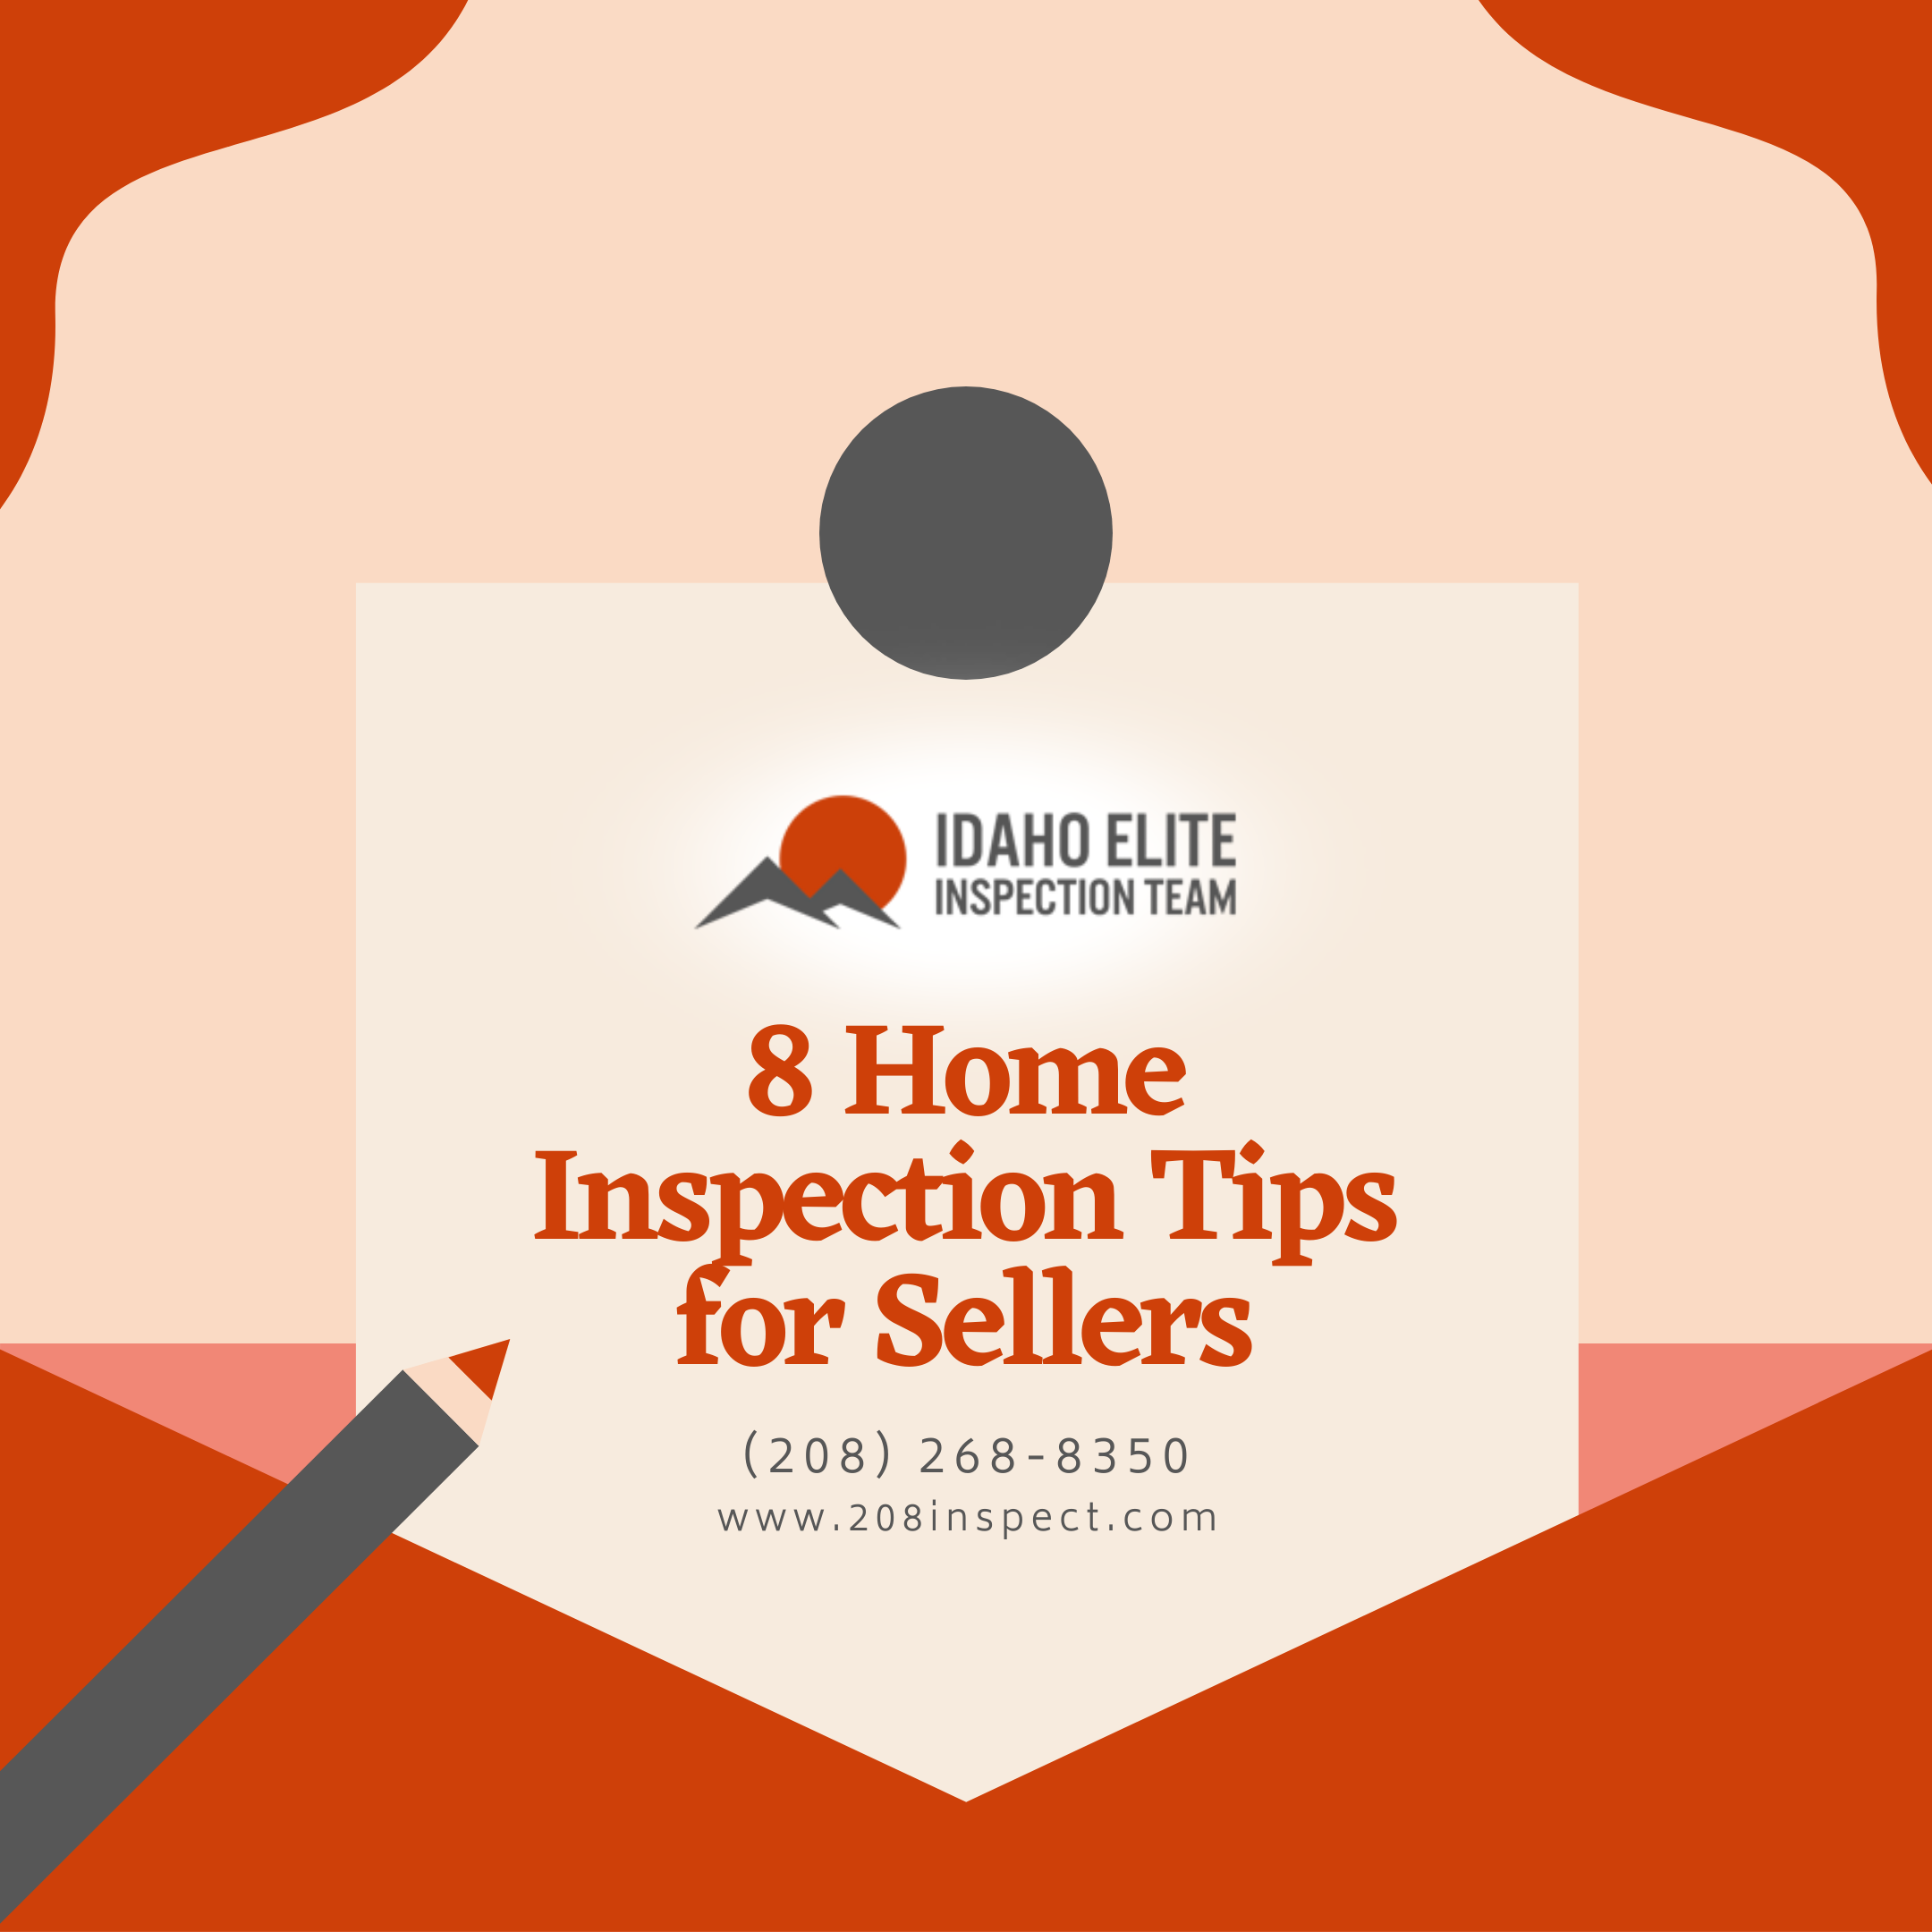 Idaho Elite Inspection Team 8 Home Inspection Tips for Sellers